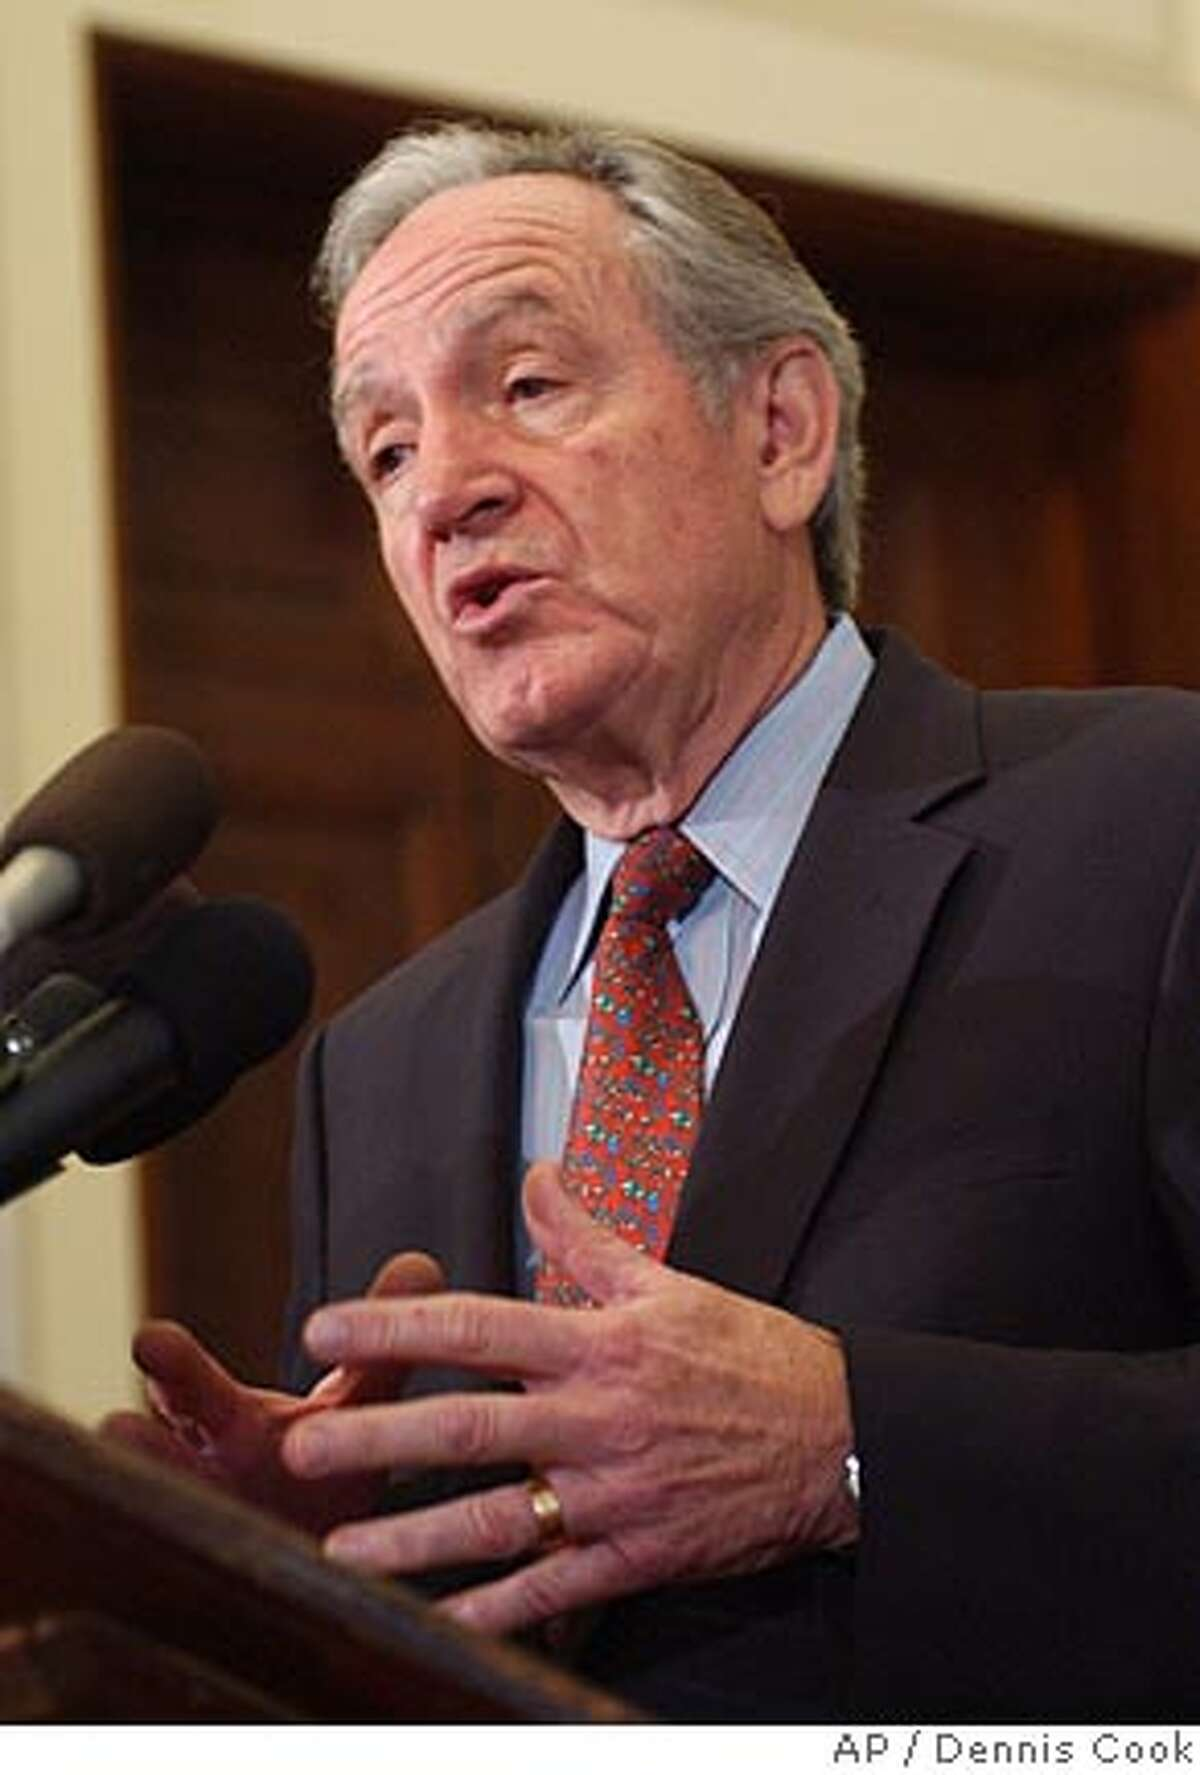 Incoming Senate Agriculture Committee Chairman, Sen. Tom Harkin, D-Iowa, gestures during a news conference on Capitol Hill in Washington, Tuesday, Dec. 12, 2006. (AP Photo/Dennis Cook)